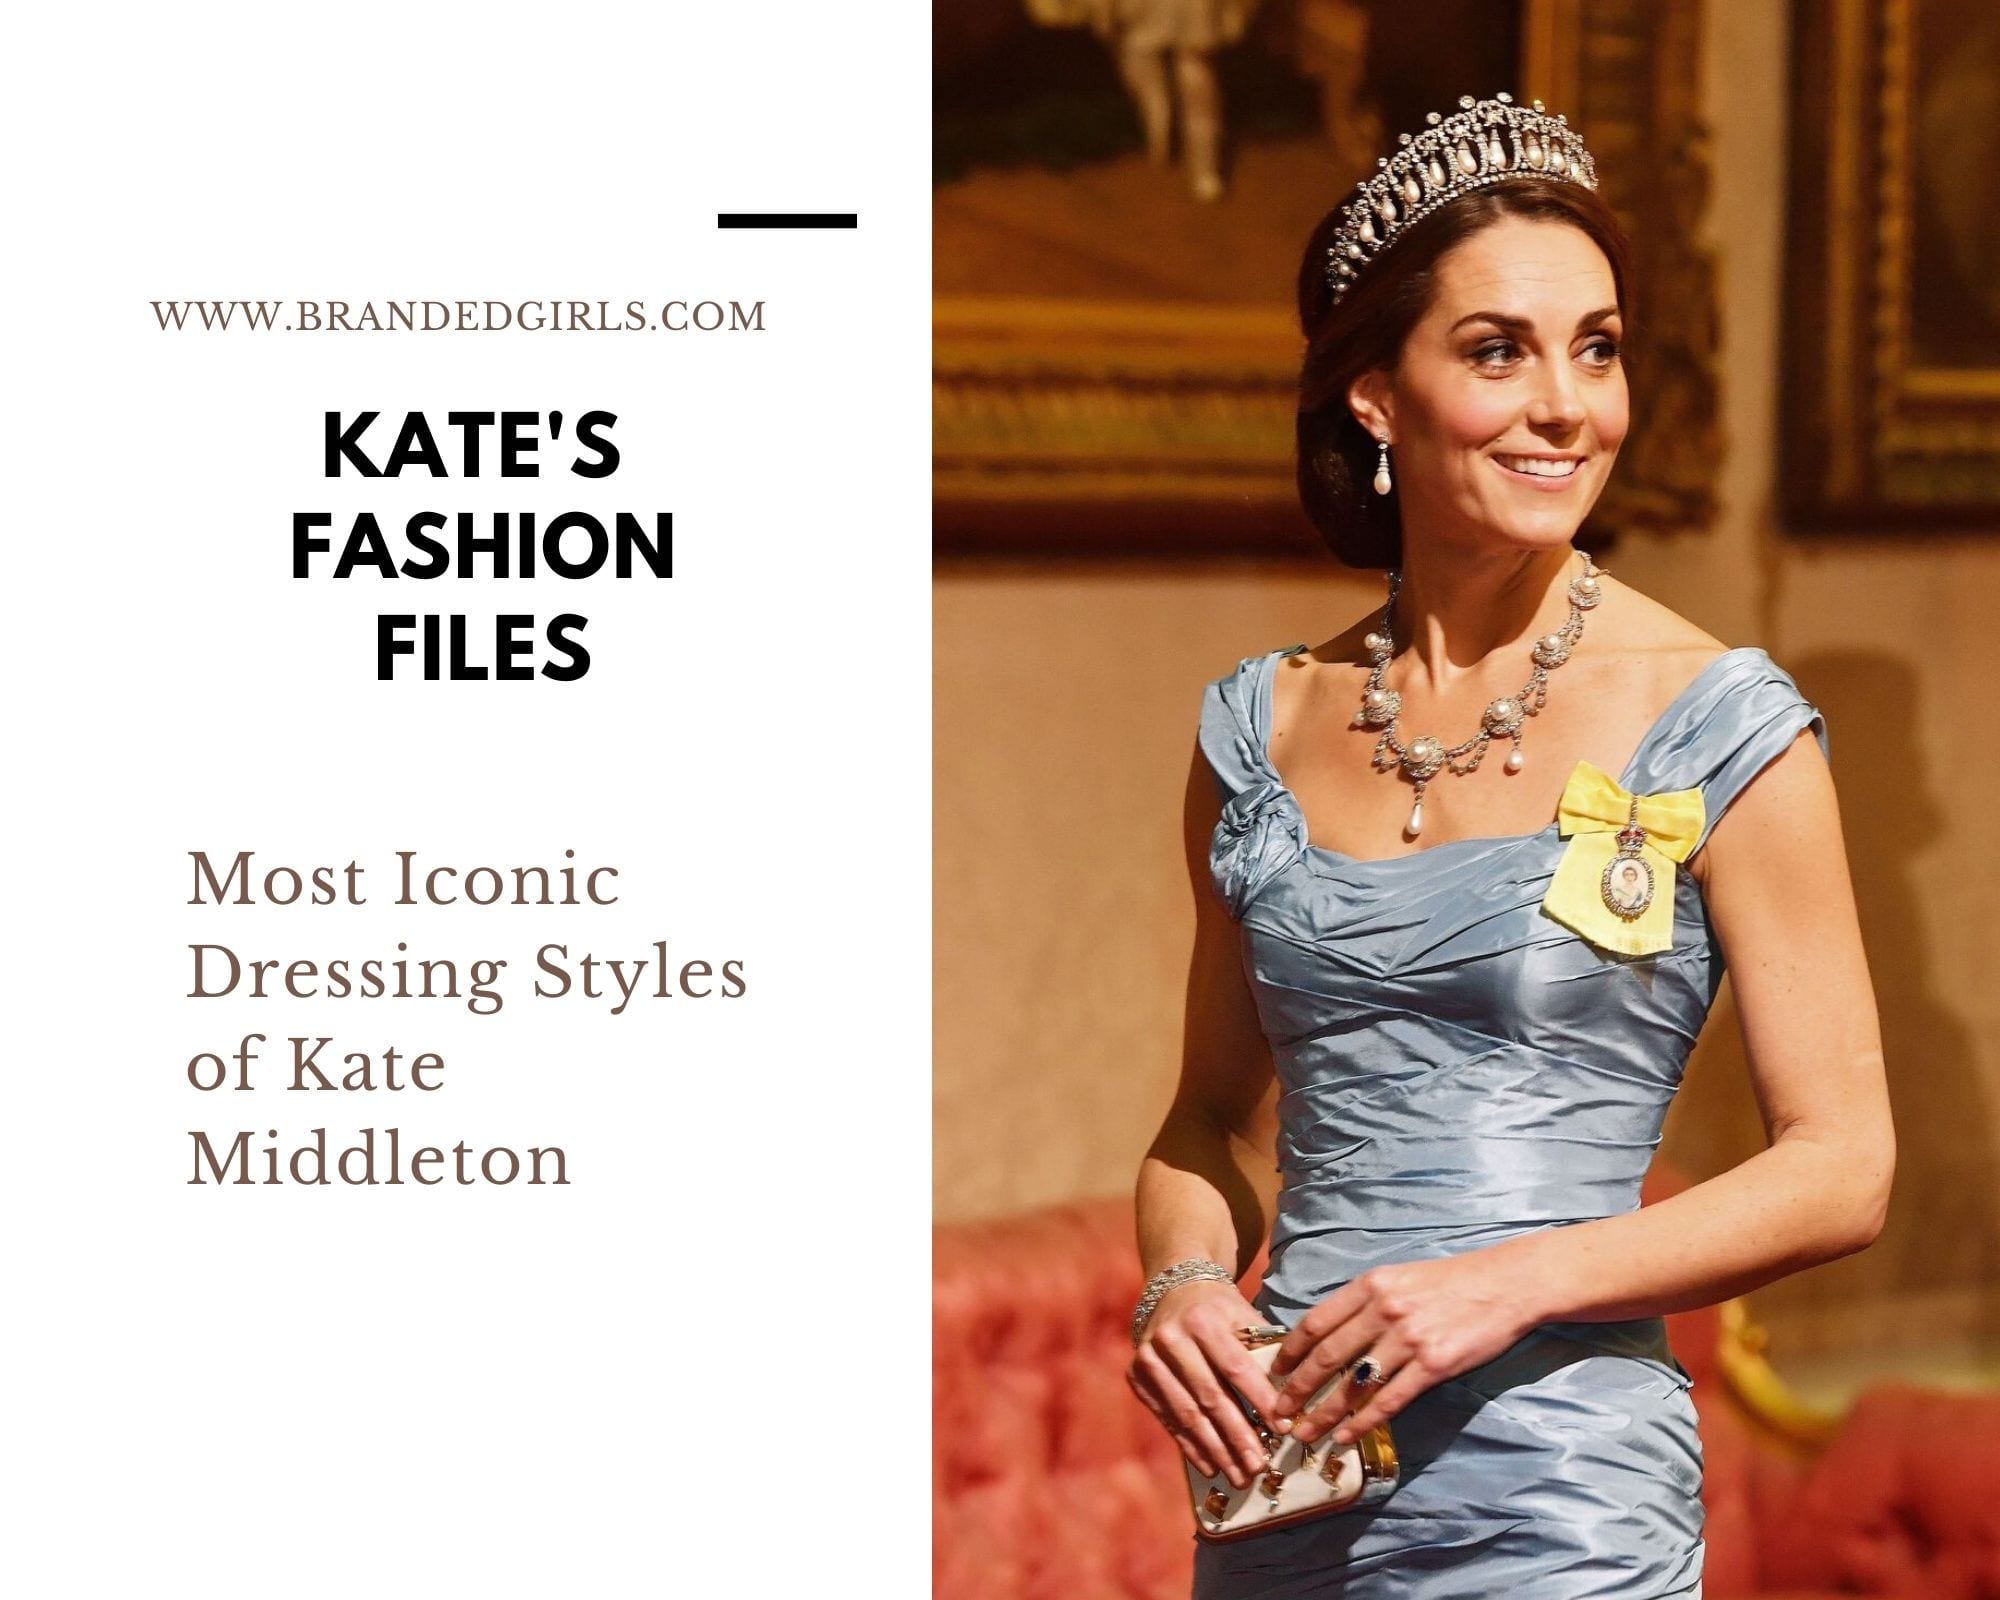 Kate-Fashion-Ideas Kate Middleton's Outfits - 25 Best Dressing Styles Of Kate